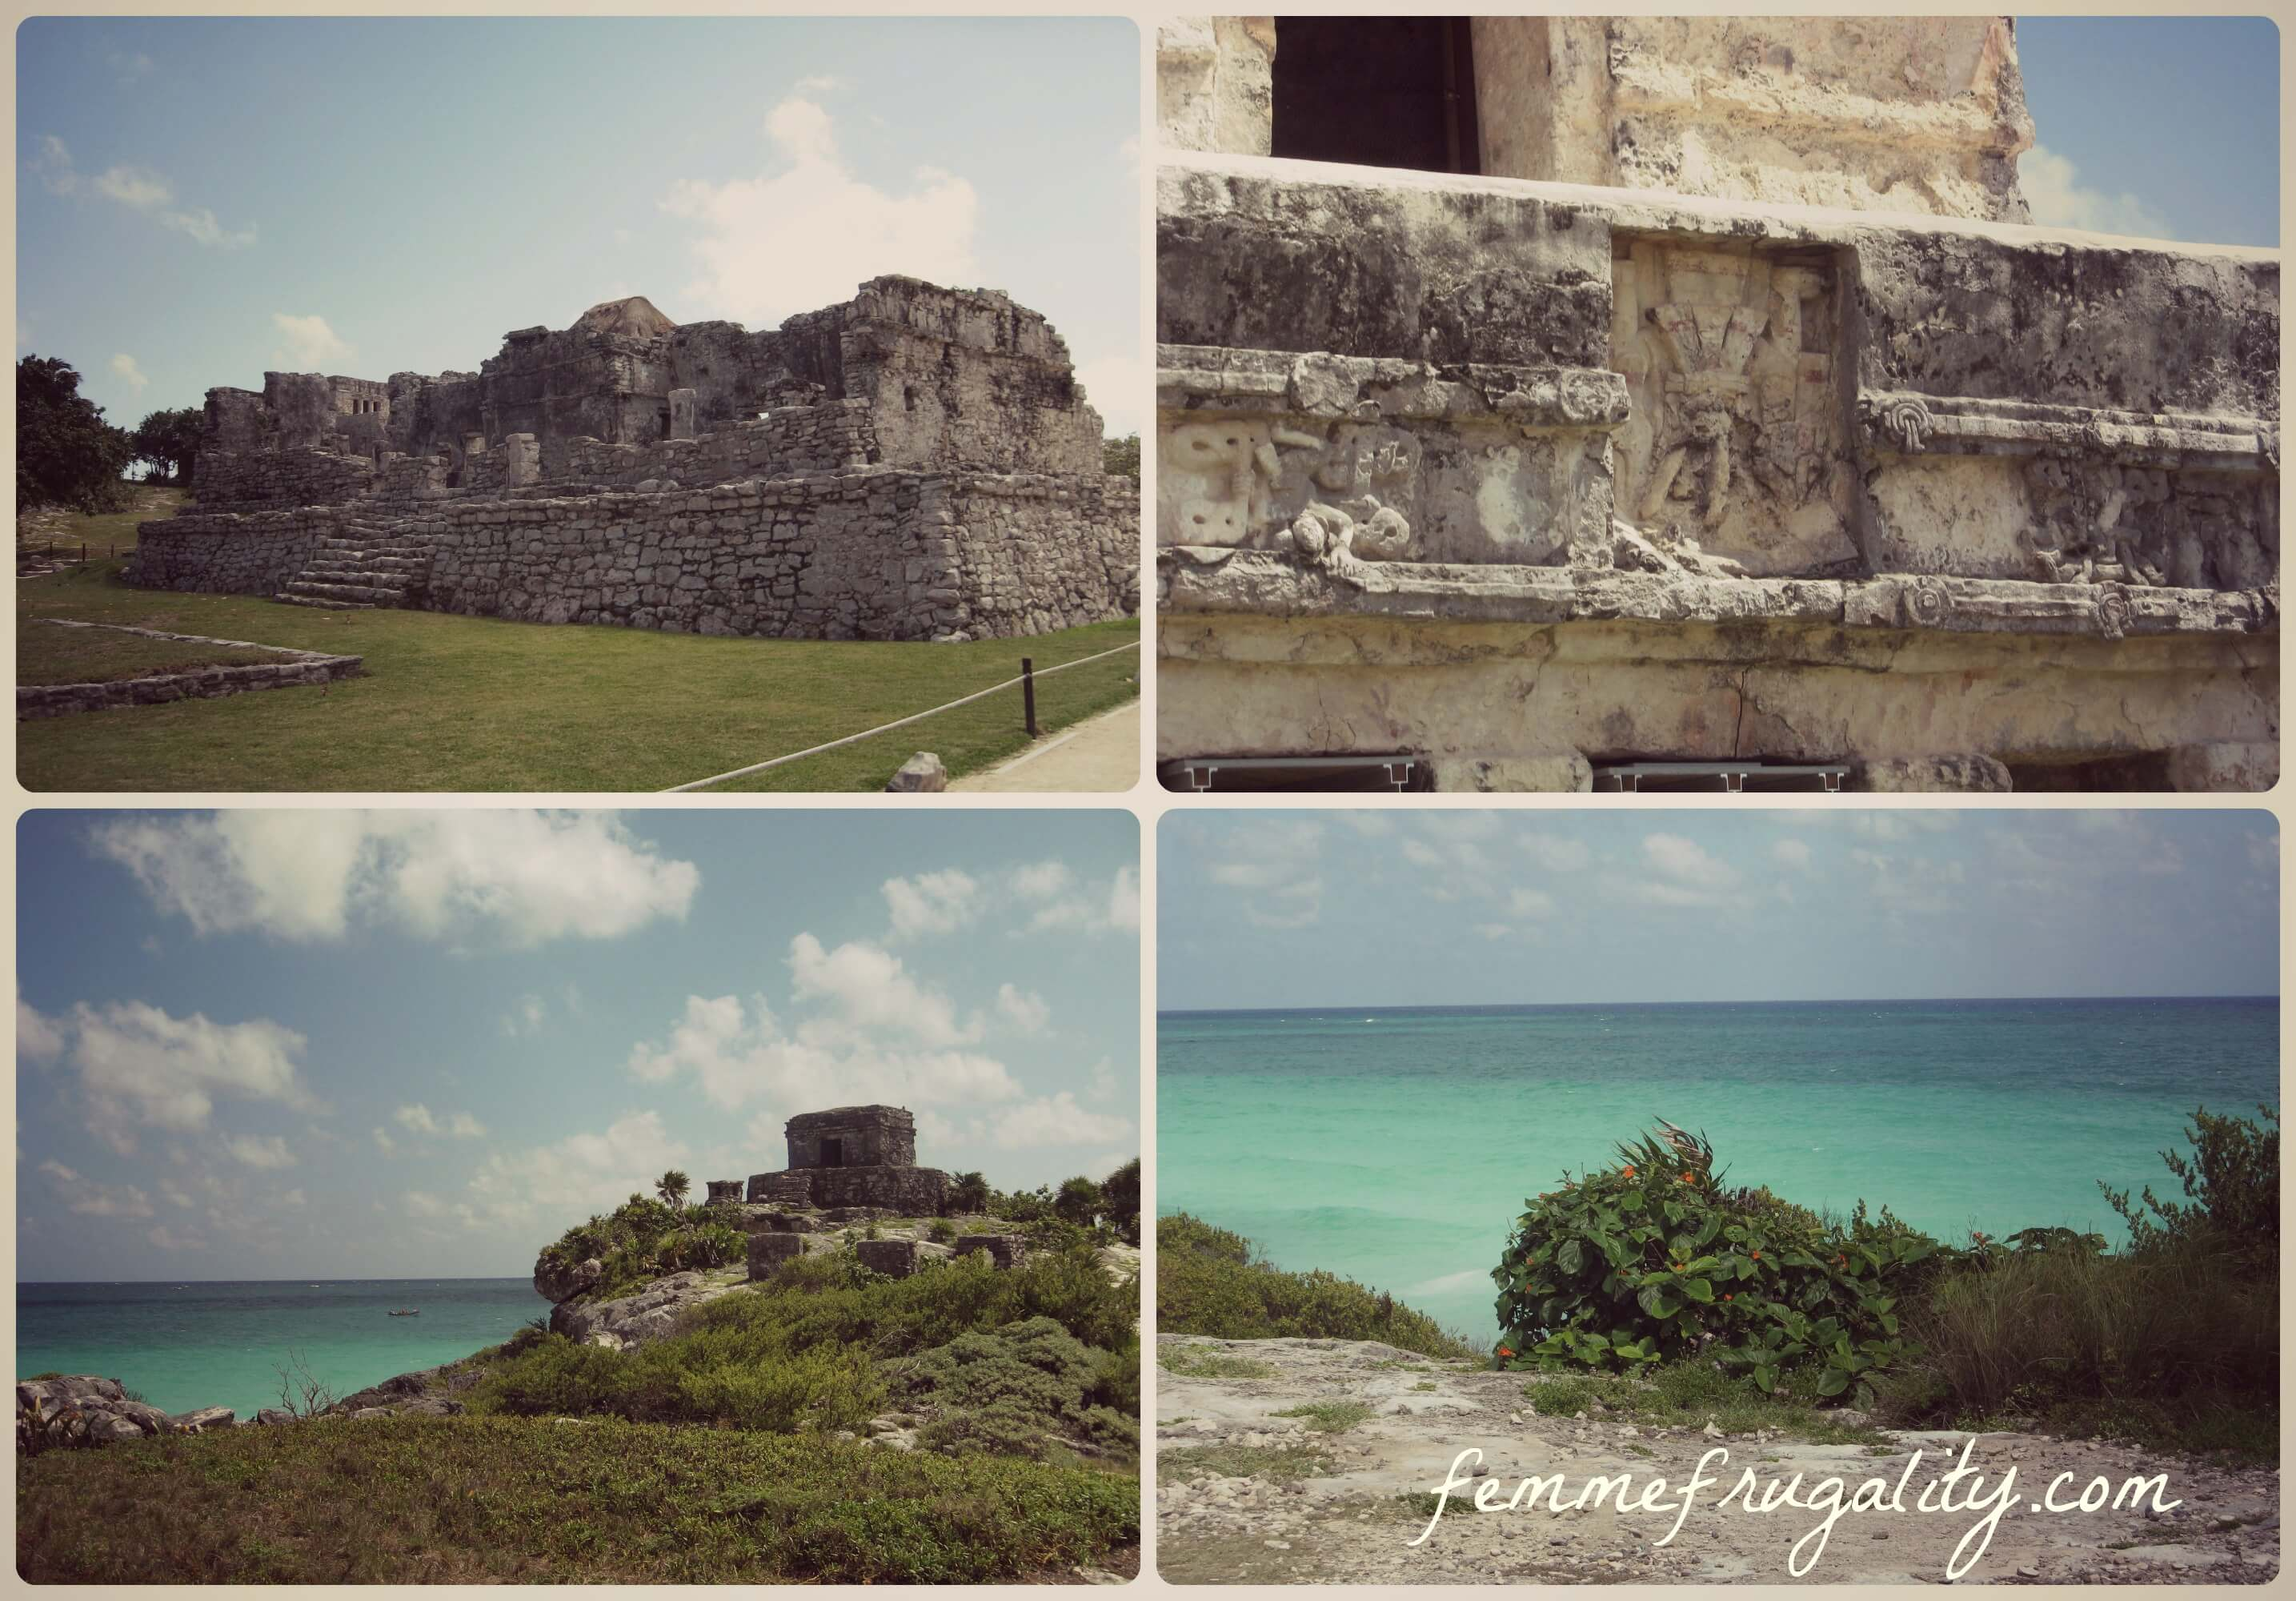 The seaside ruins in Tulum, Mexico